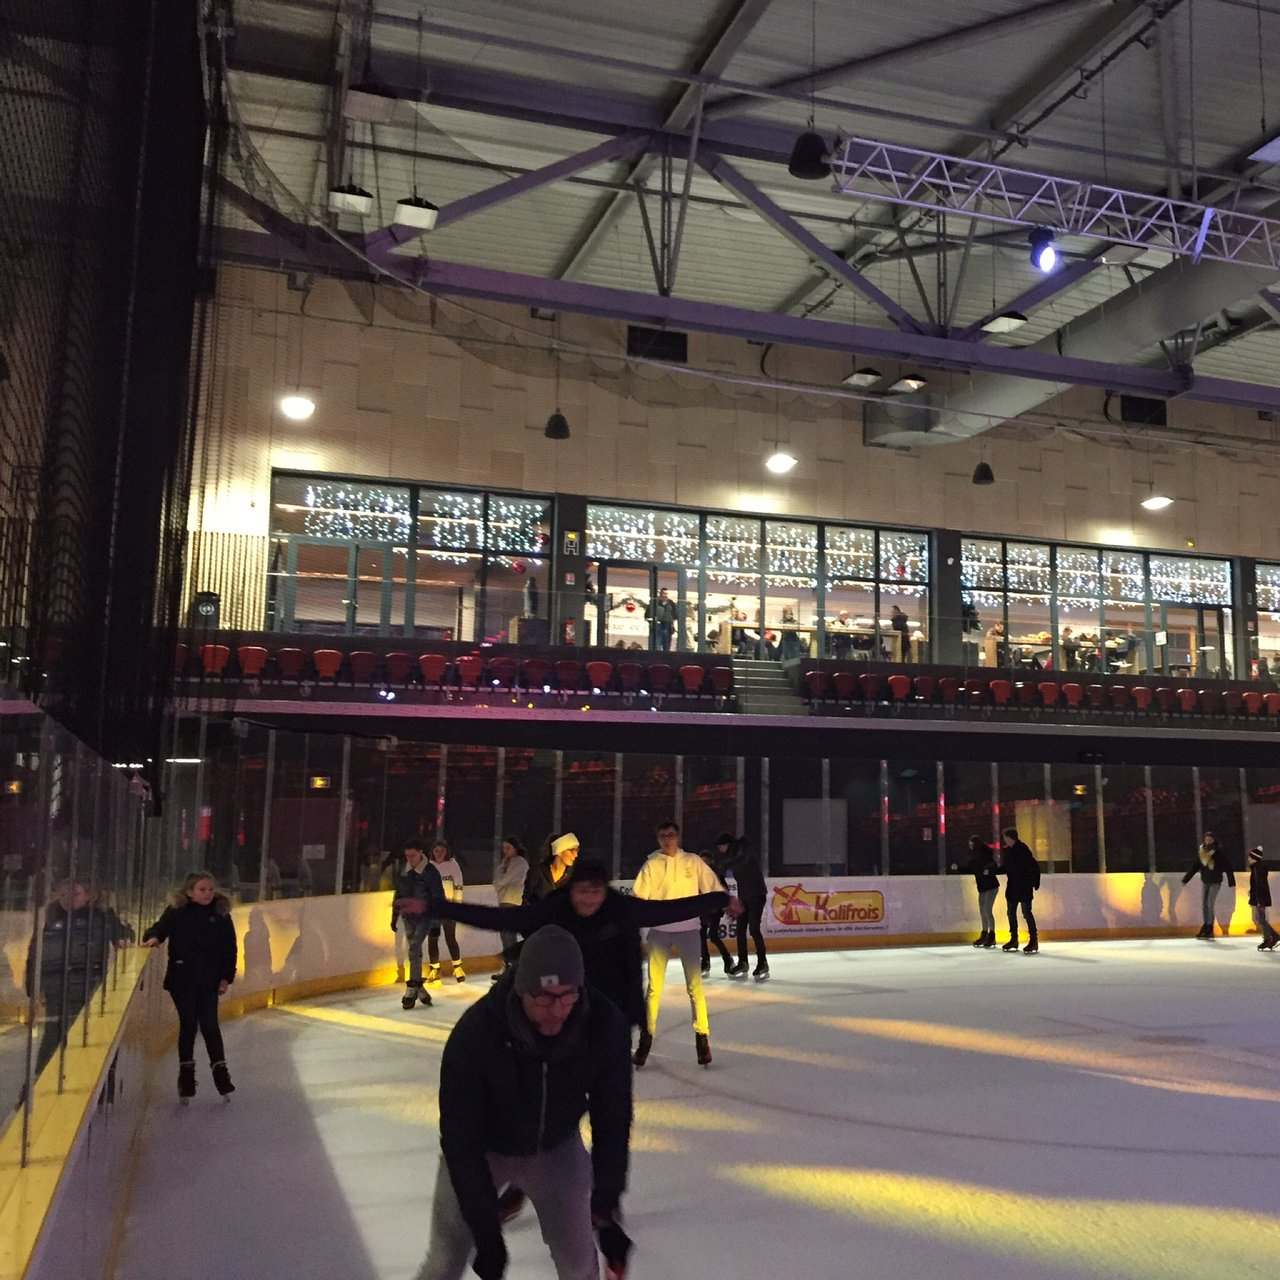 Patinoire De Dunkerque (Dunkirk) - 2020 All You Need To Know ... tout Piscine Mardyck